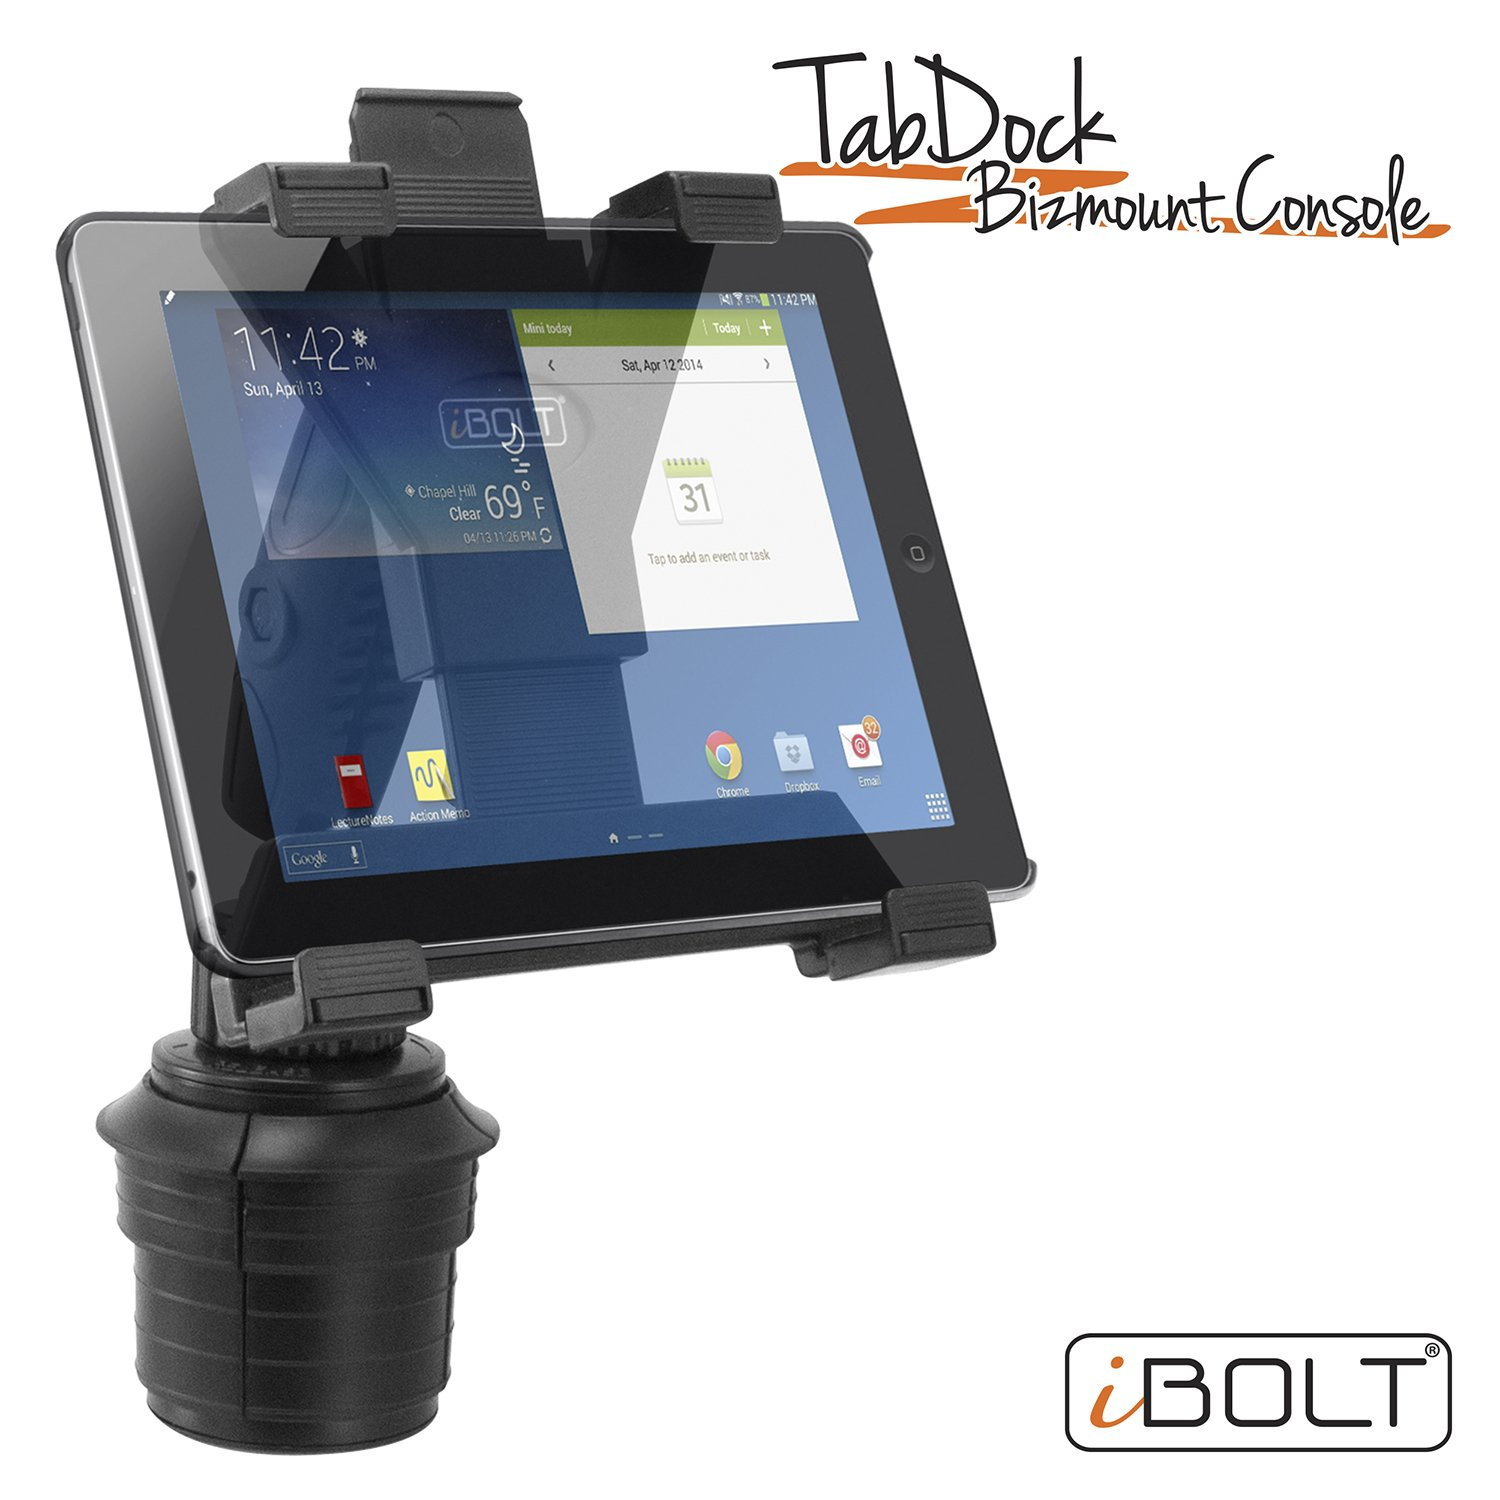 iBOLT TabDock Console - Heavy Duty Expandable and Adjustable Cup Holder mount for all 7'' - 10'' tablets (iPad, Nexus, Samsung Tab). Great for work, personal, and business vehicles